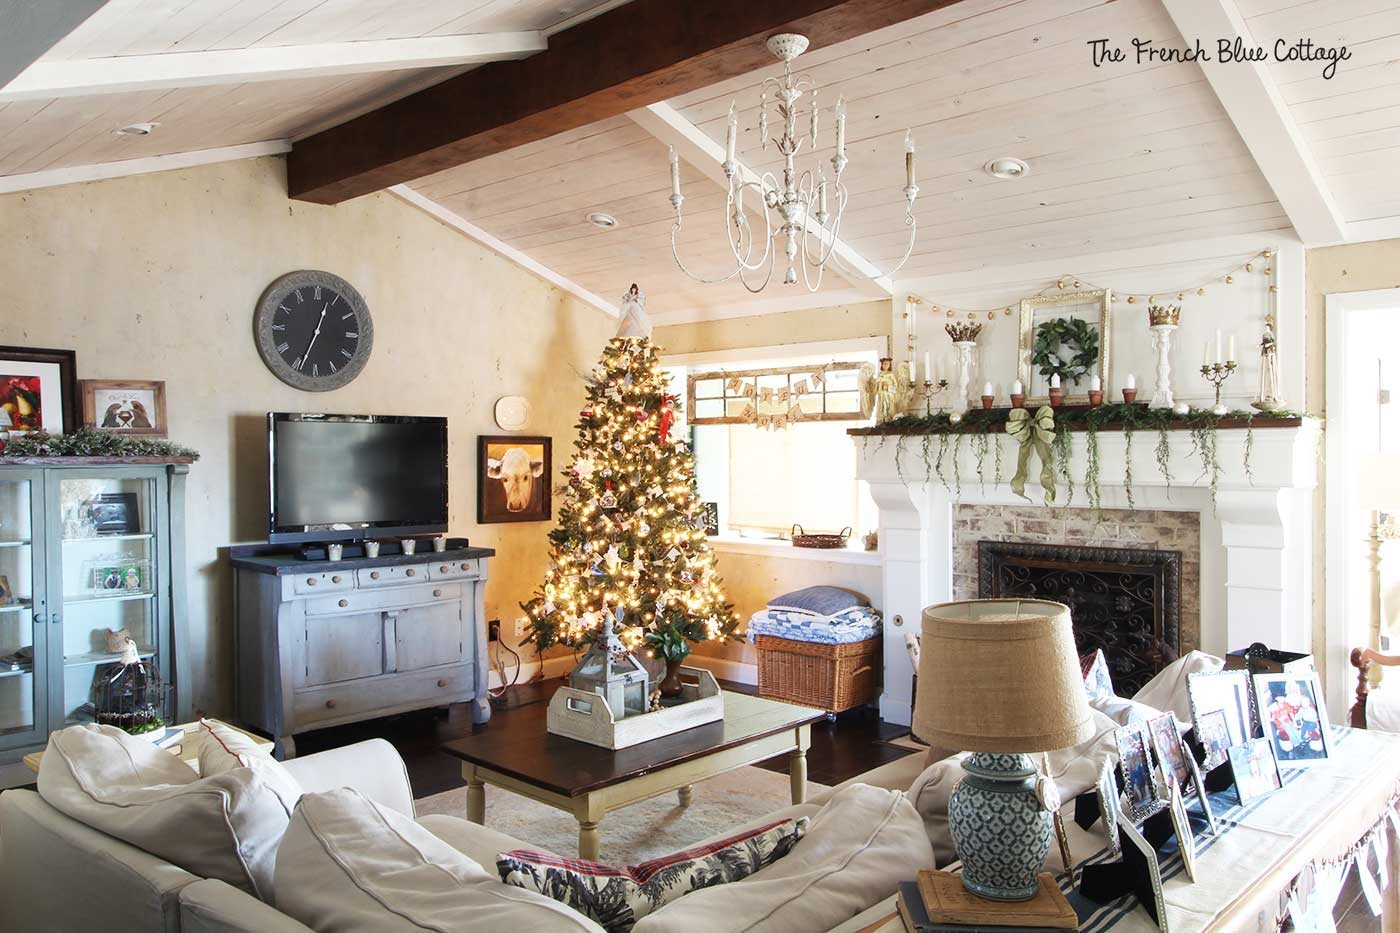 A French country living room decorated for Christmas.